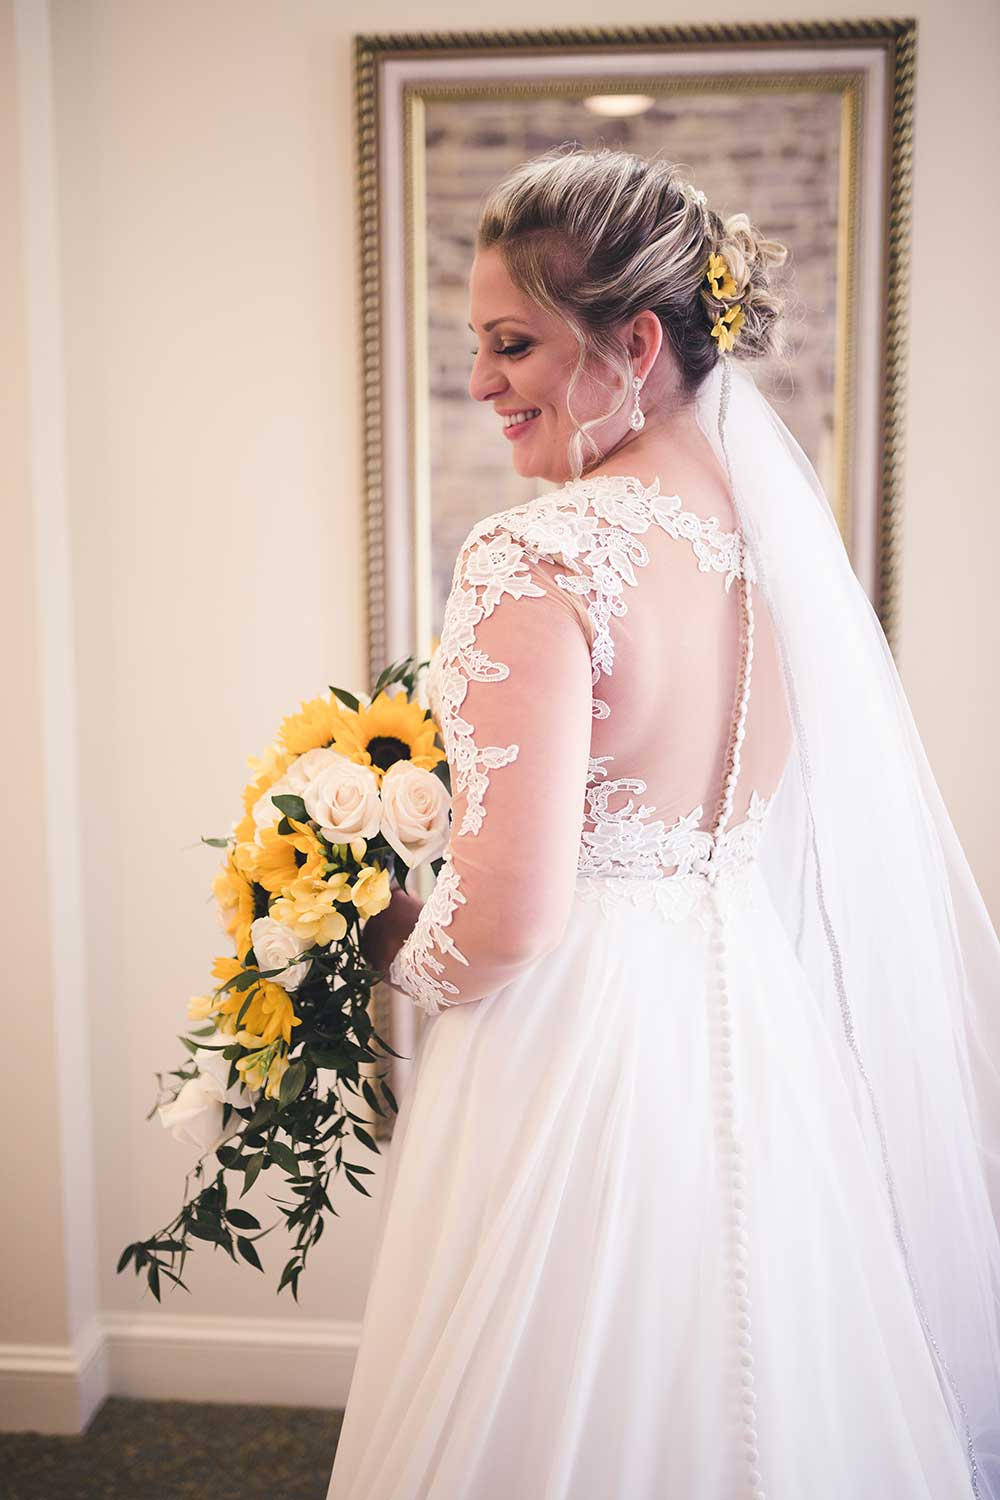 Bride in her dress with sunflower bouquet